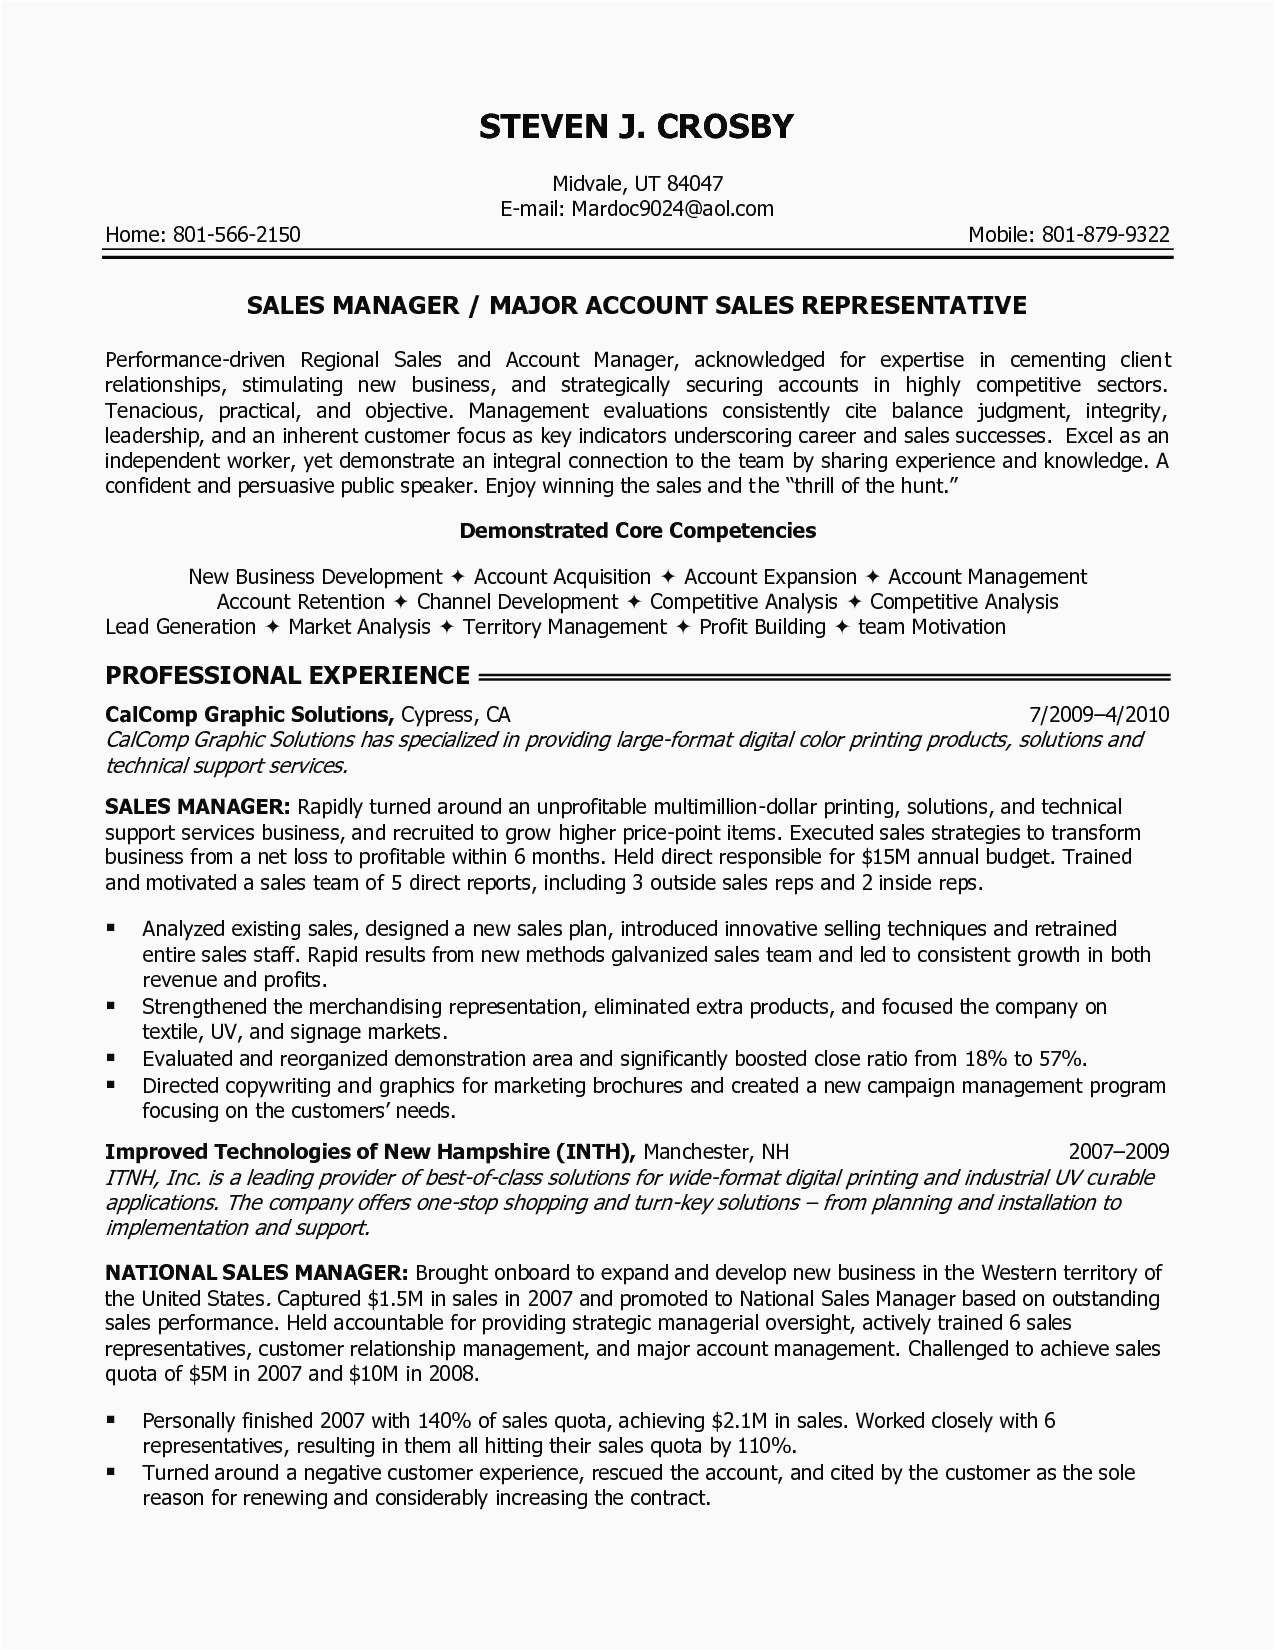 Good Objective For Resume Good Objective Resume Samples Awesome 21 Objectives For Resume New Of Good Objective Resume Samples good objective for resume wikiresume.com